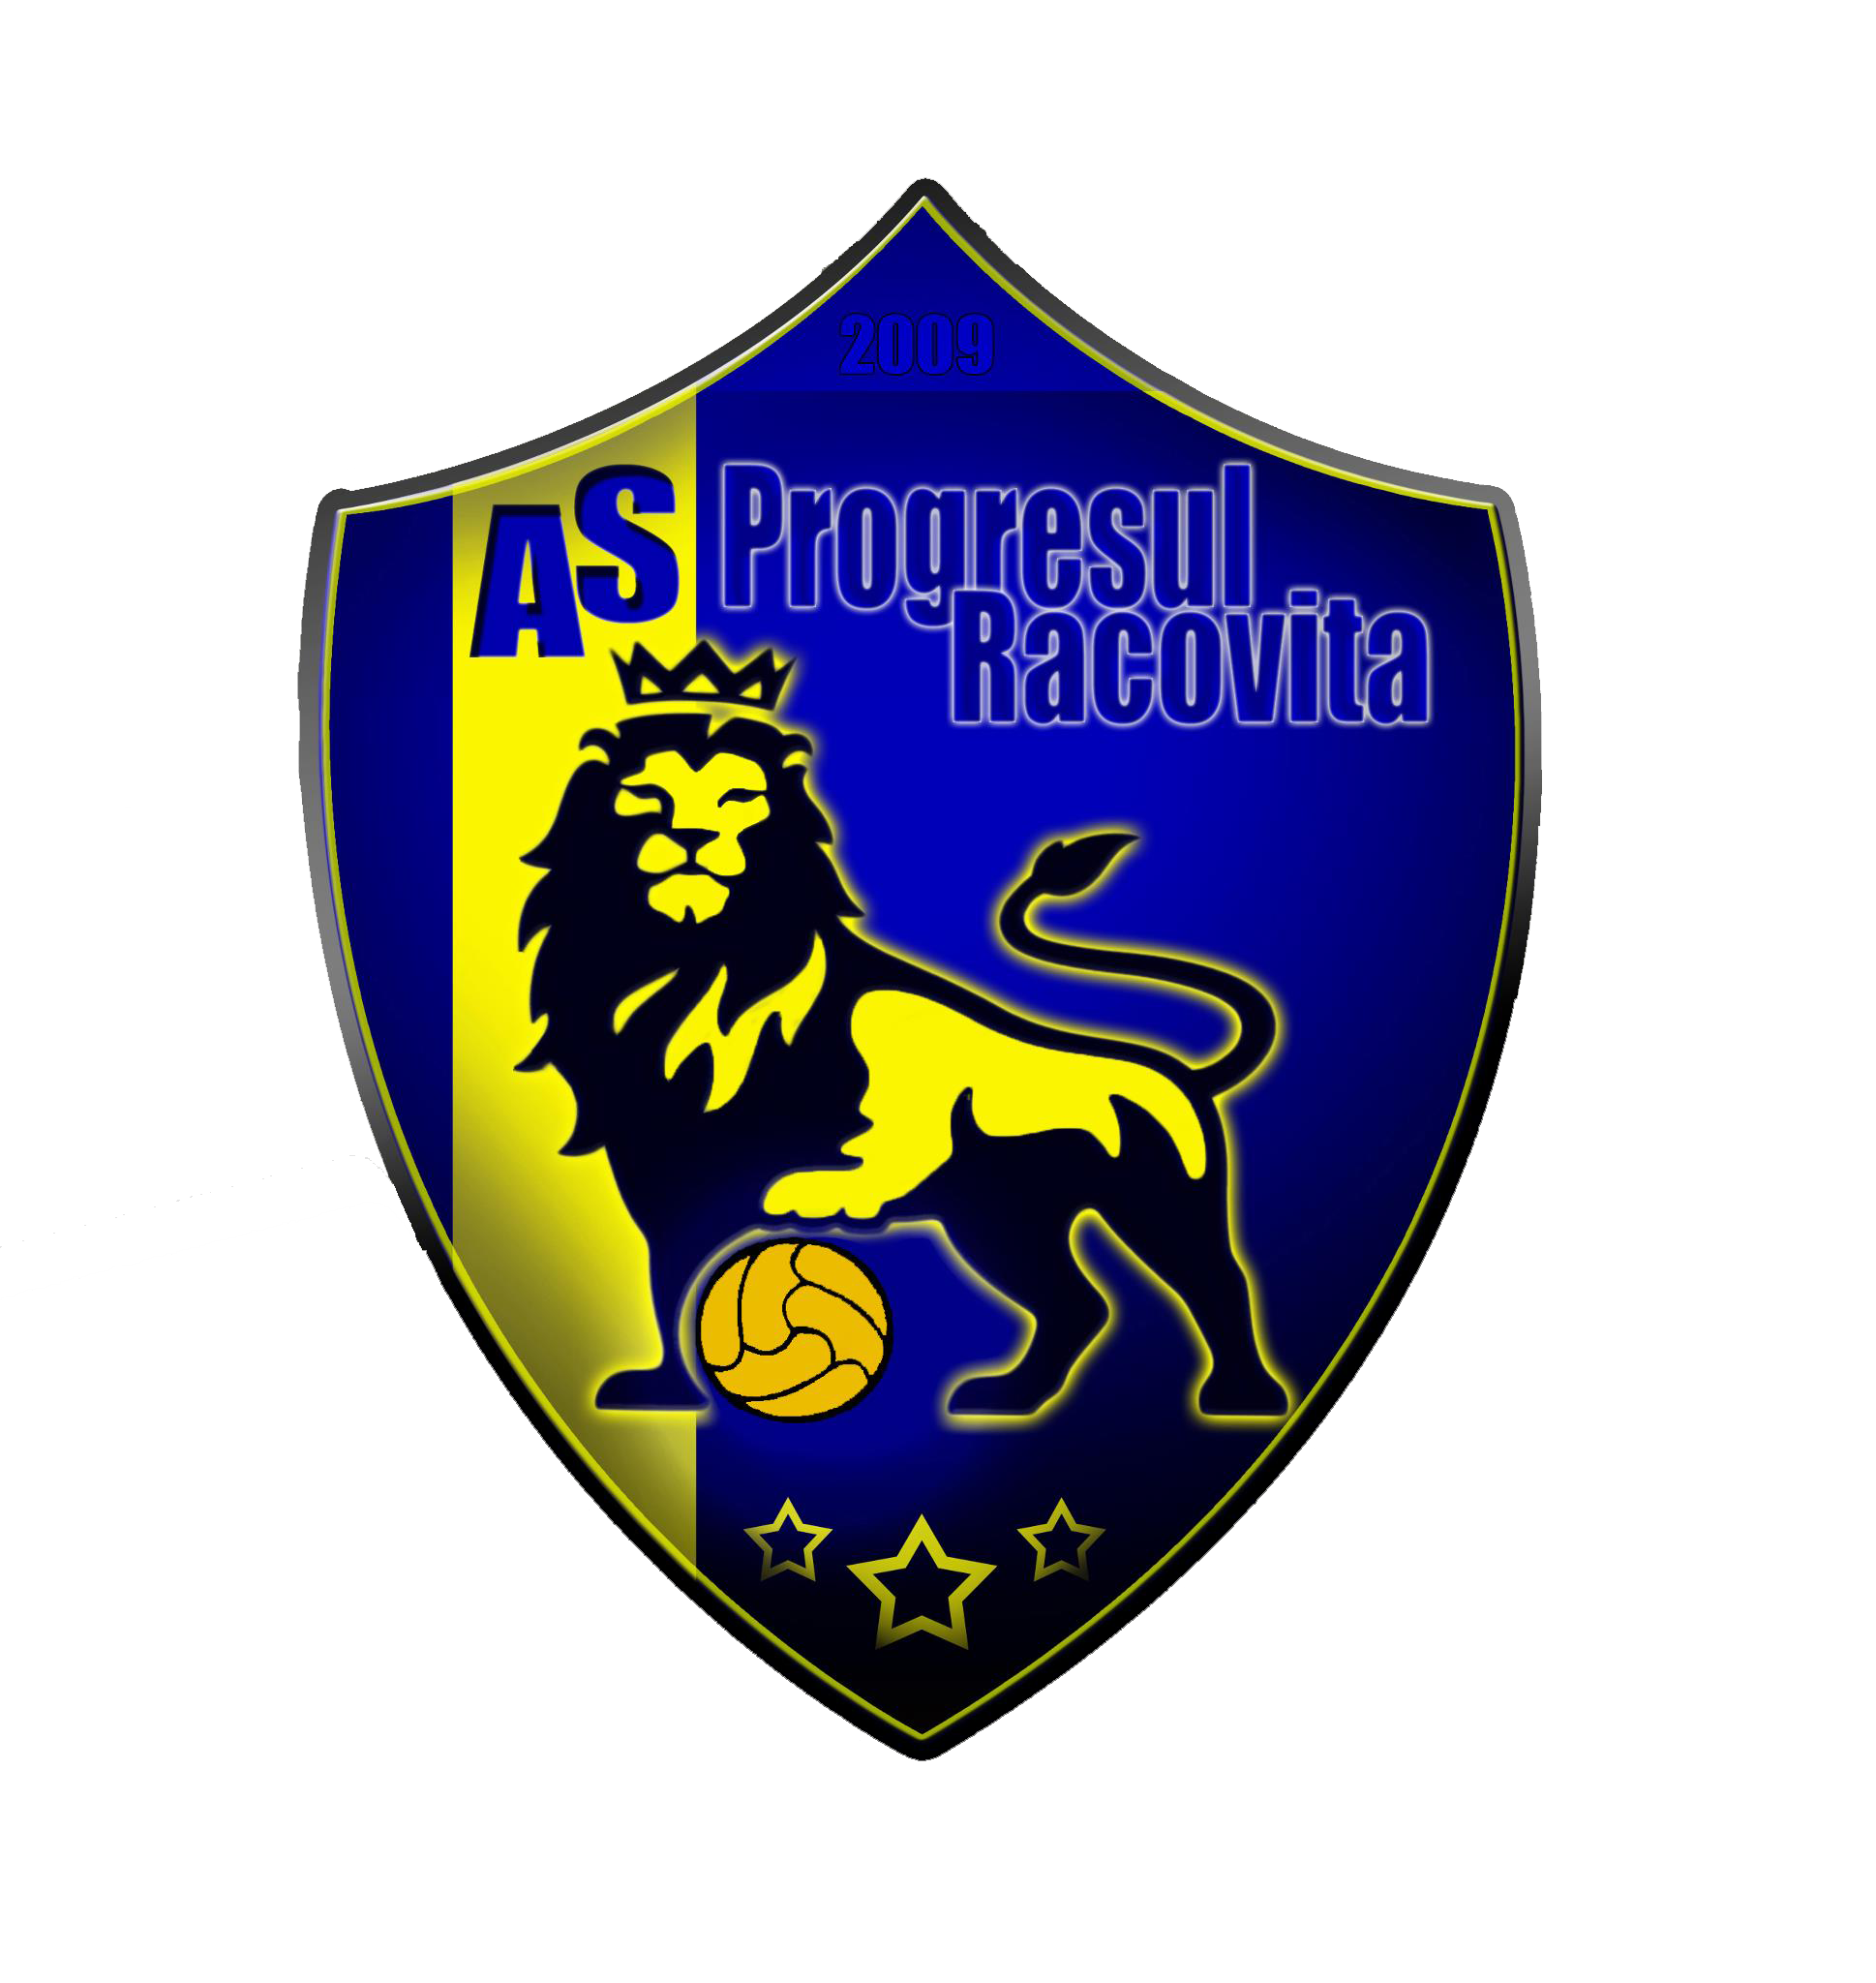 AS FC PROGRESUL RACOVITA